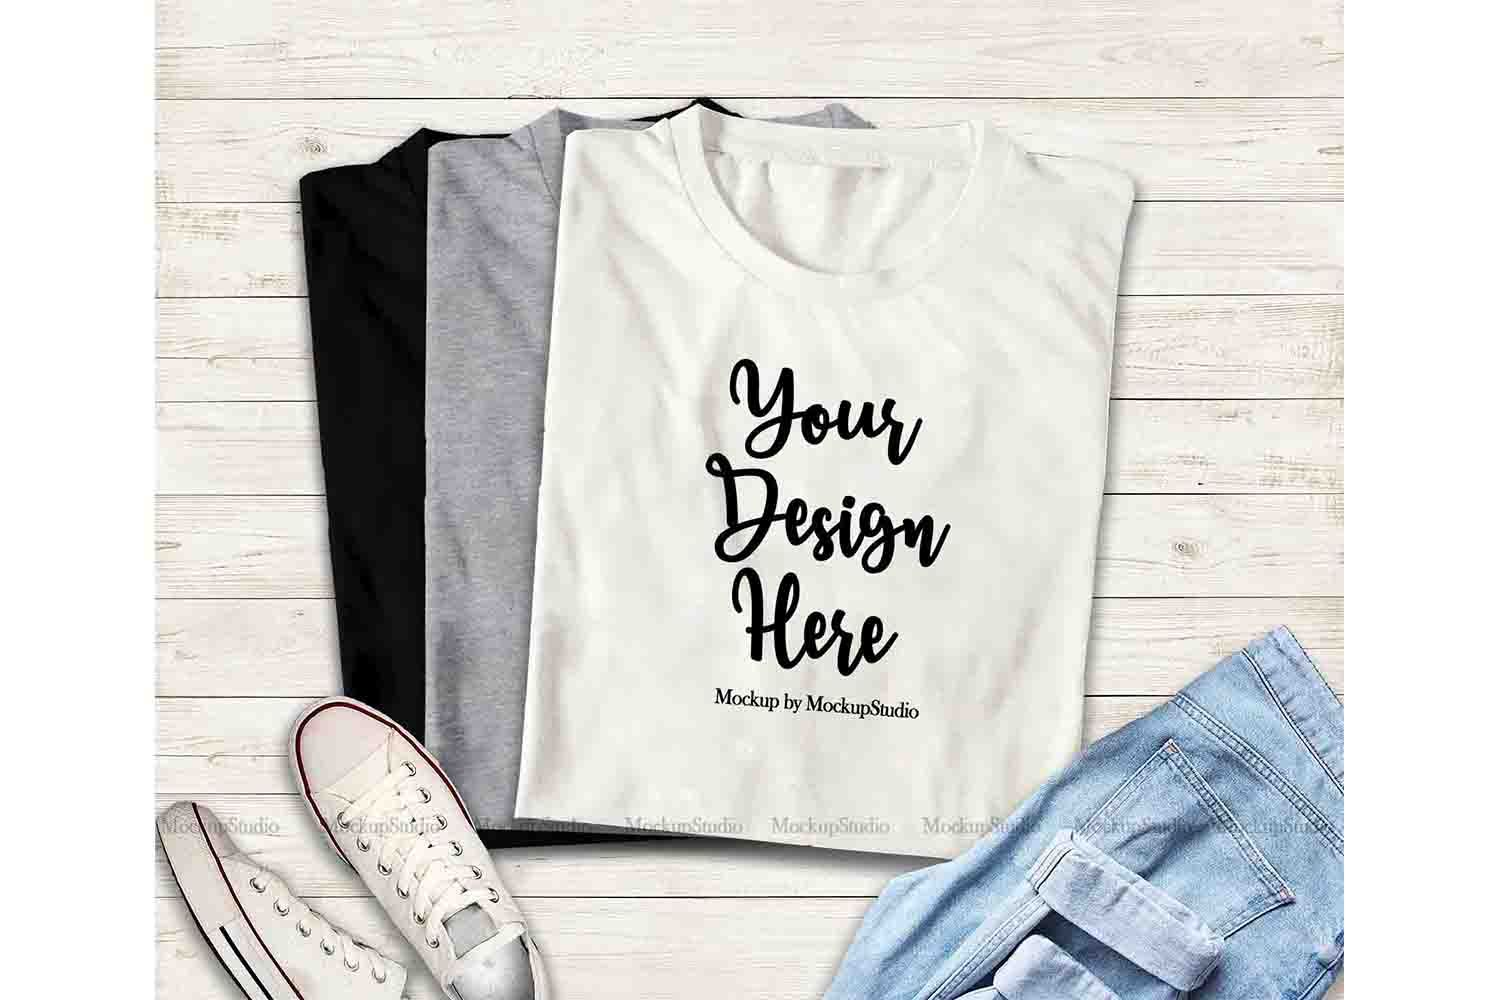 Download Multiple Colors Folded Tshirts Mockup Stacked Shirts 184032 Clothing Design Bundles In 2021 Design Mockup Free Psd Template Free Mockup